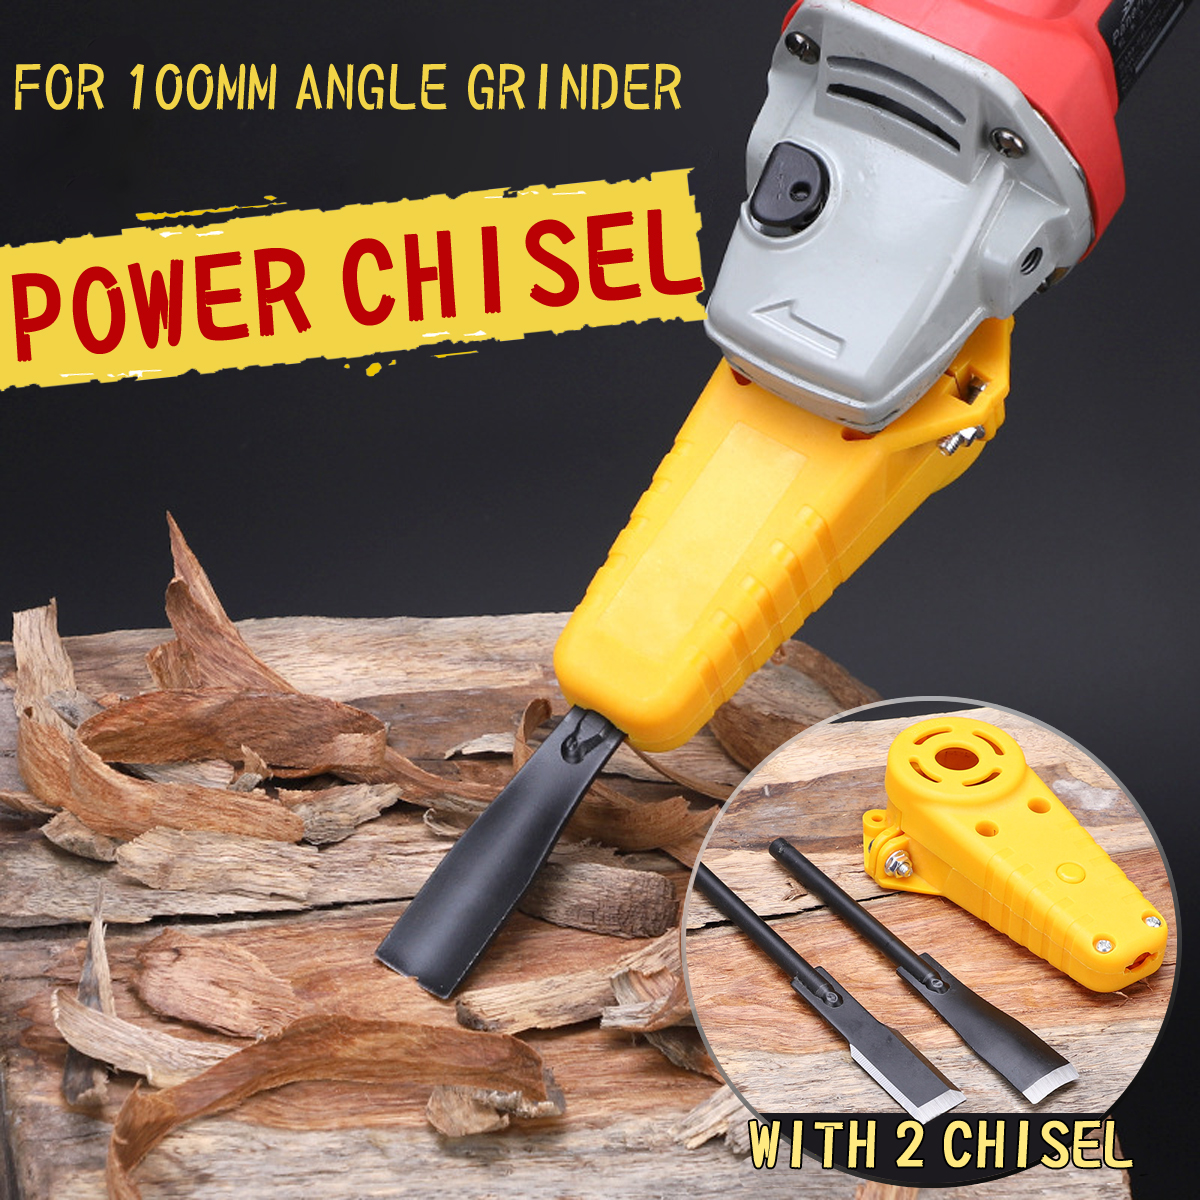 Woodworking Power Chisel Wood Carving Electric Chisel M10 Adapter Set Changed 100 Angle Grinder Into Tool free shipping domestic woodworking high power electric tool portable electric planer